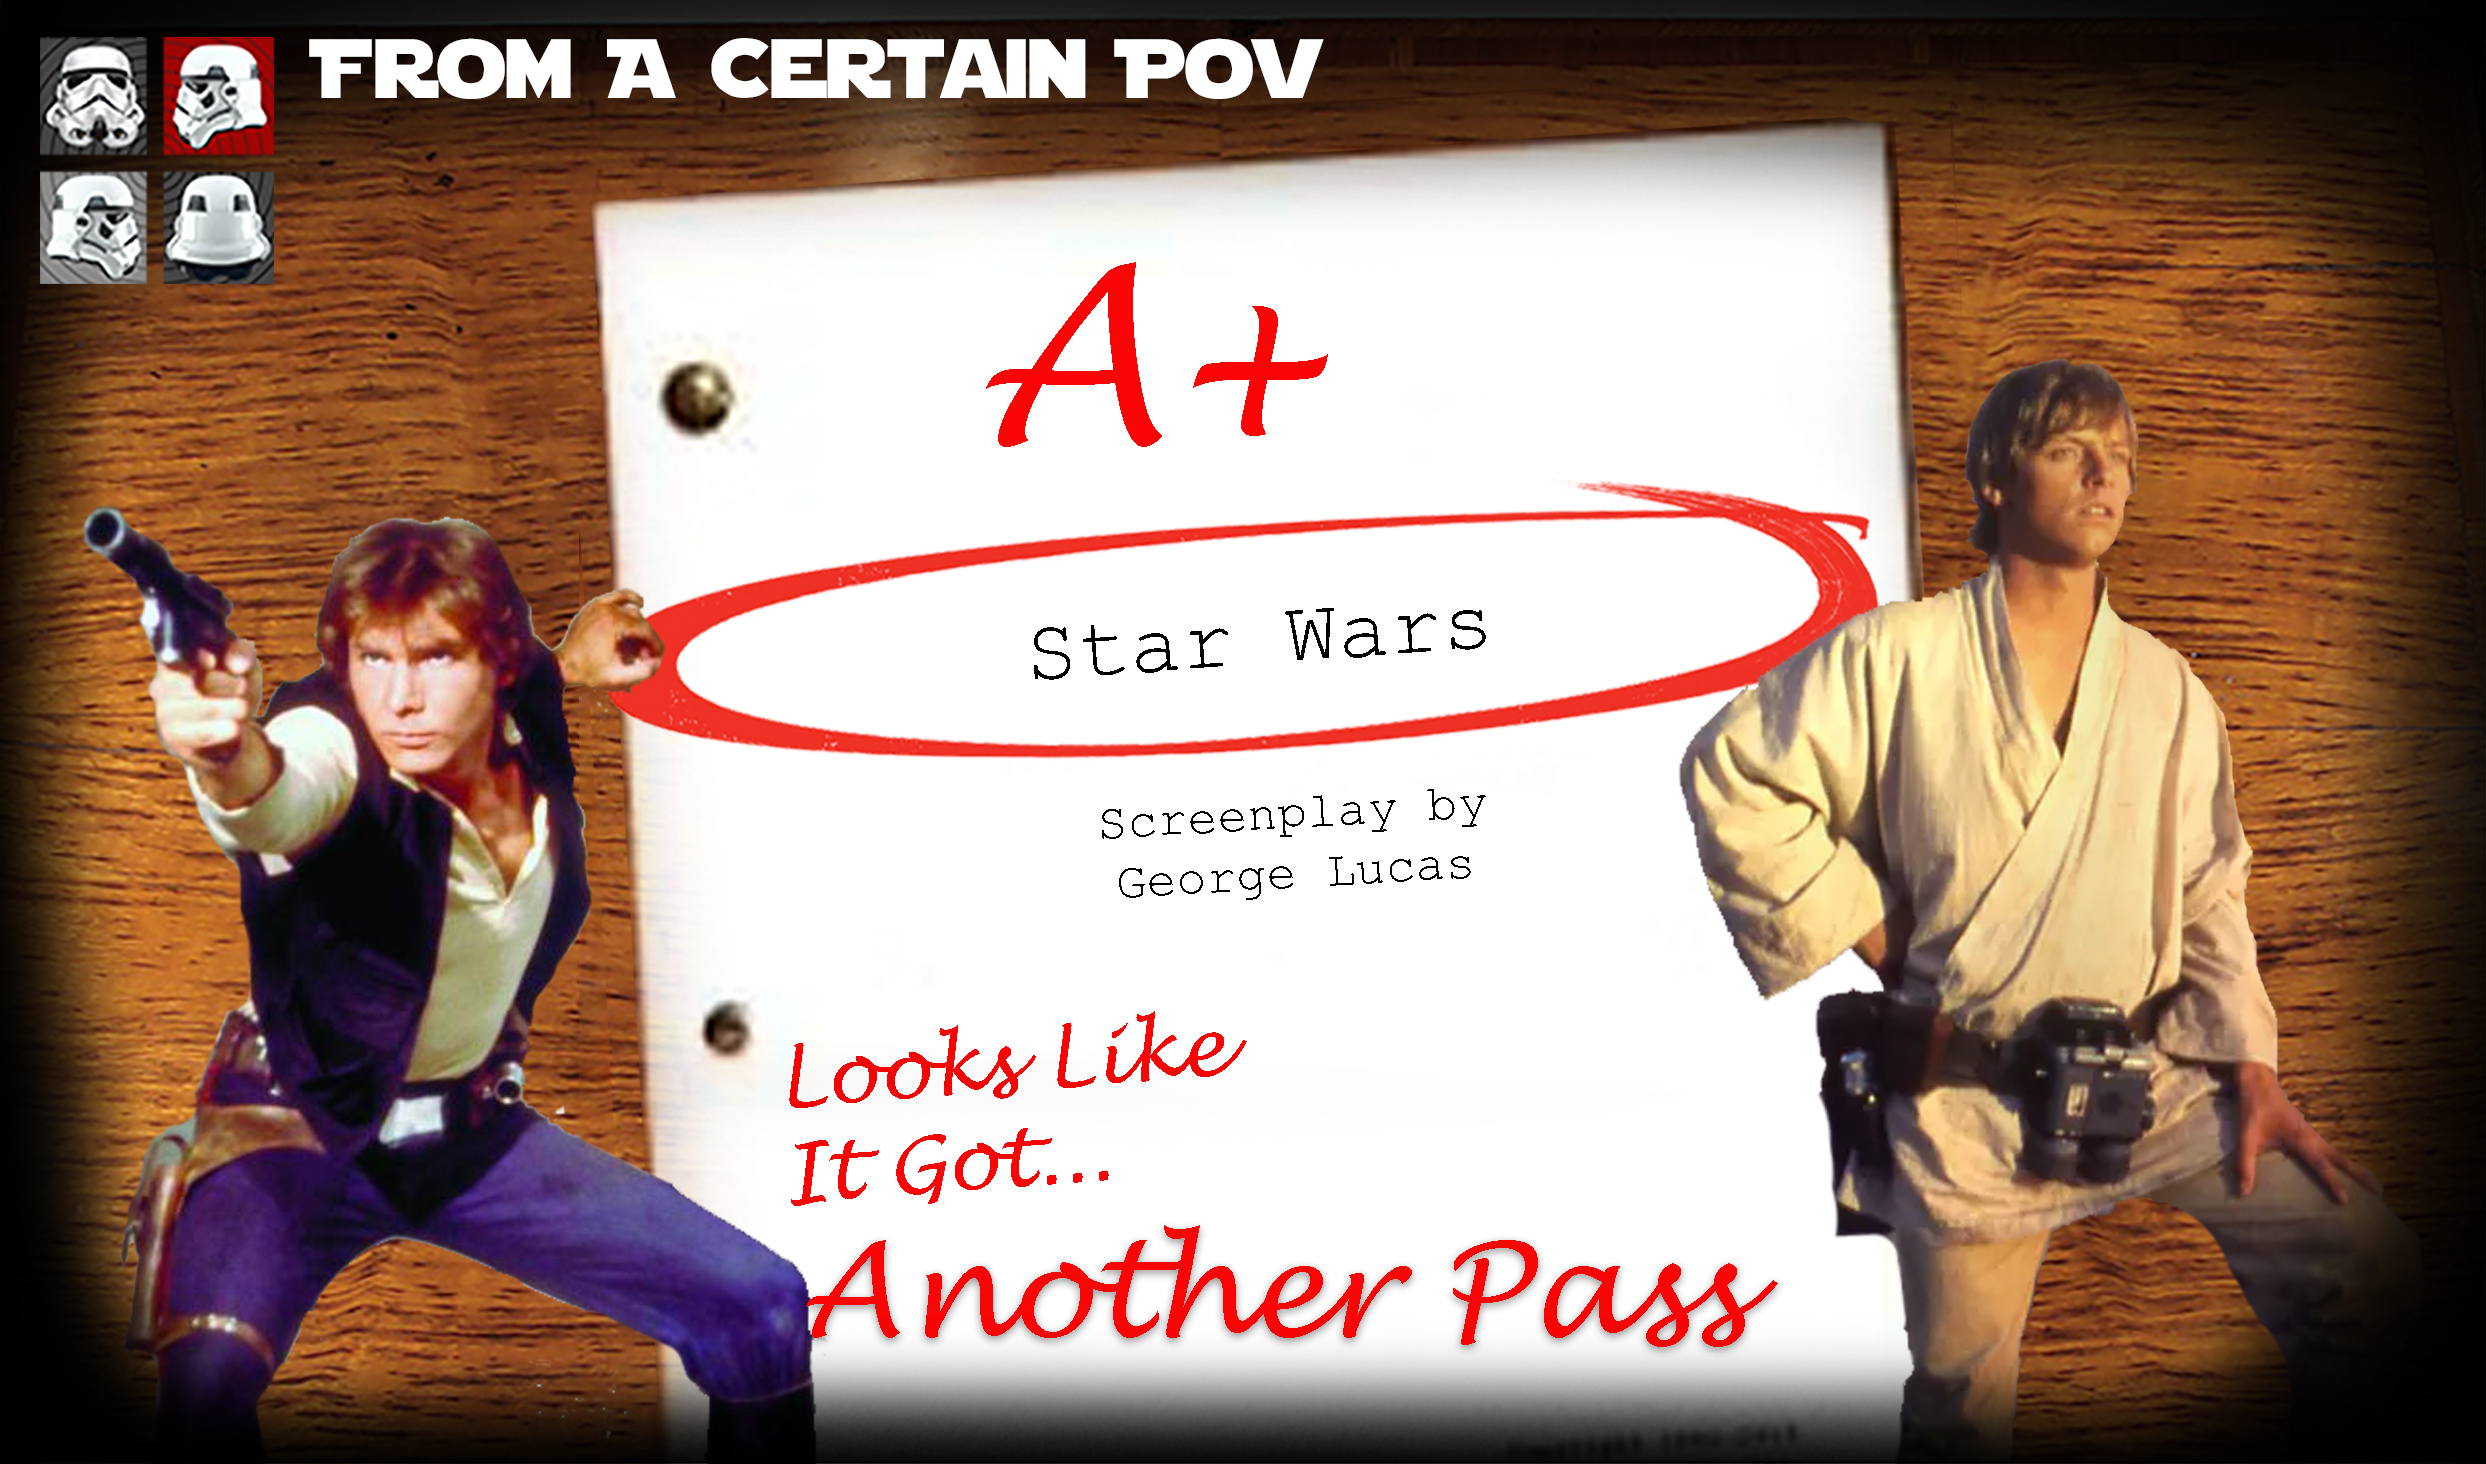 40 - Another Pass at Star Wars A New Hope Banner.jpg